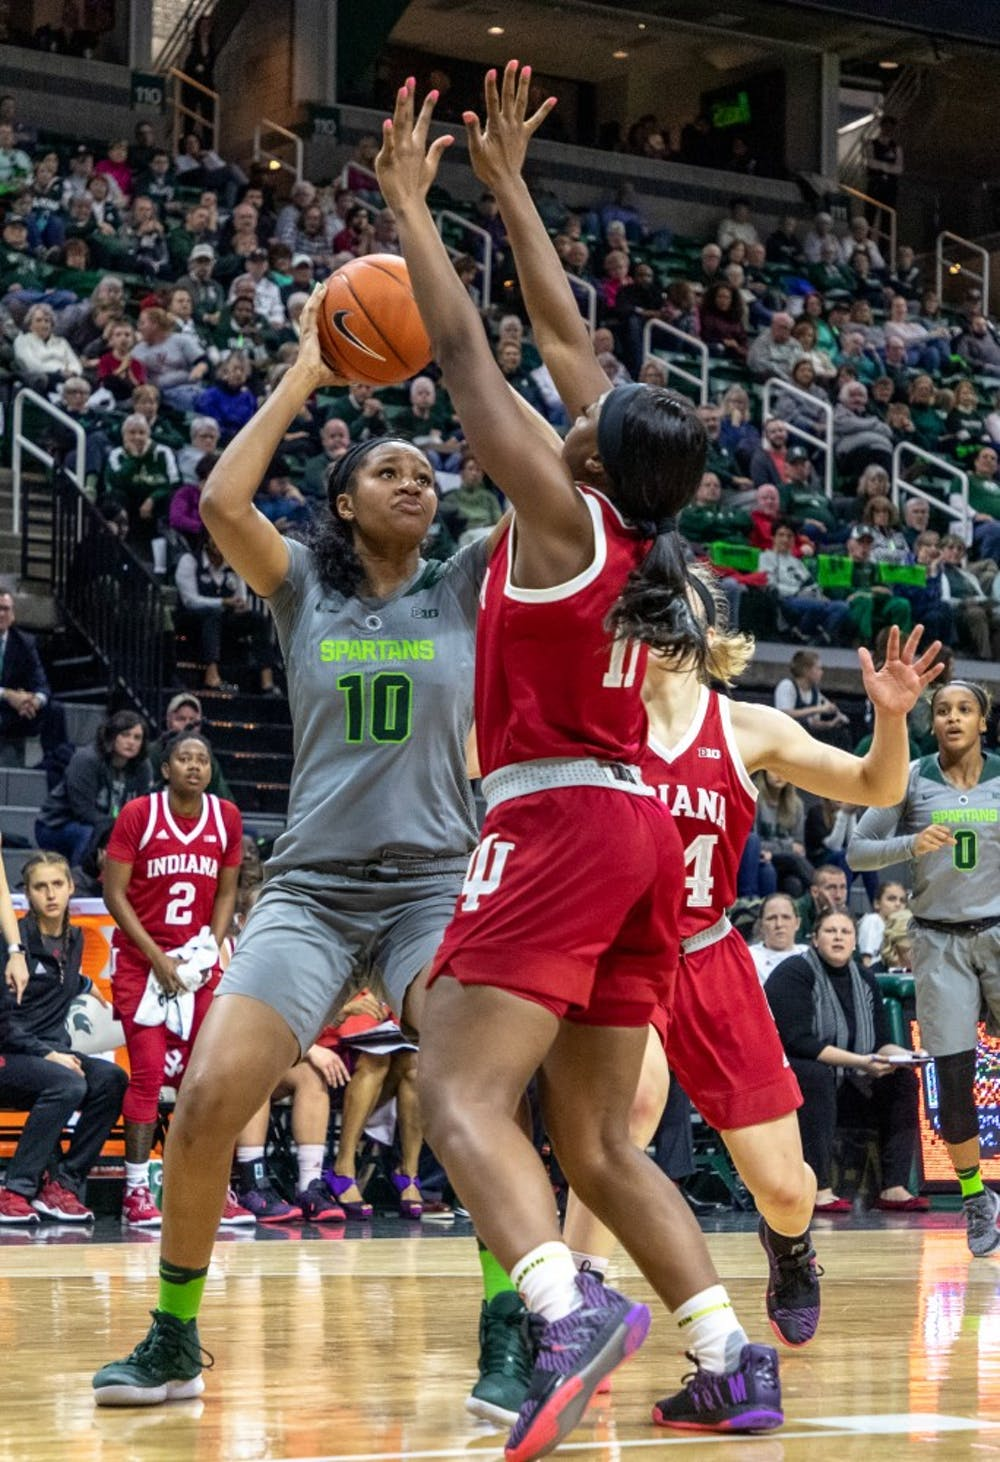 Freshman forward Sidney Cooks (10) takes a shot during the game against Indiana on Feb.11, 2019. The Spartans lead the Hoosiers 33-30 at halftime.